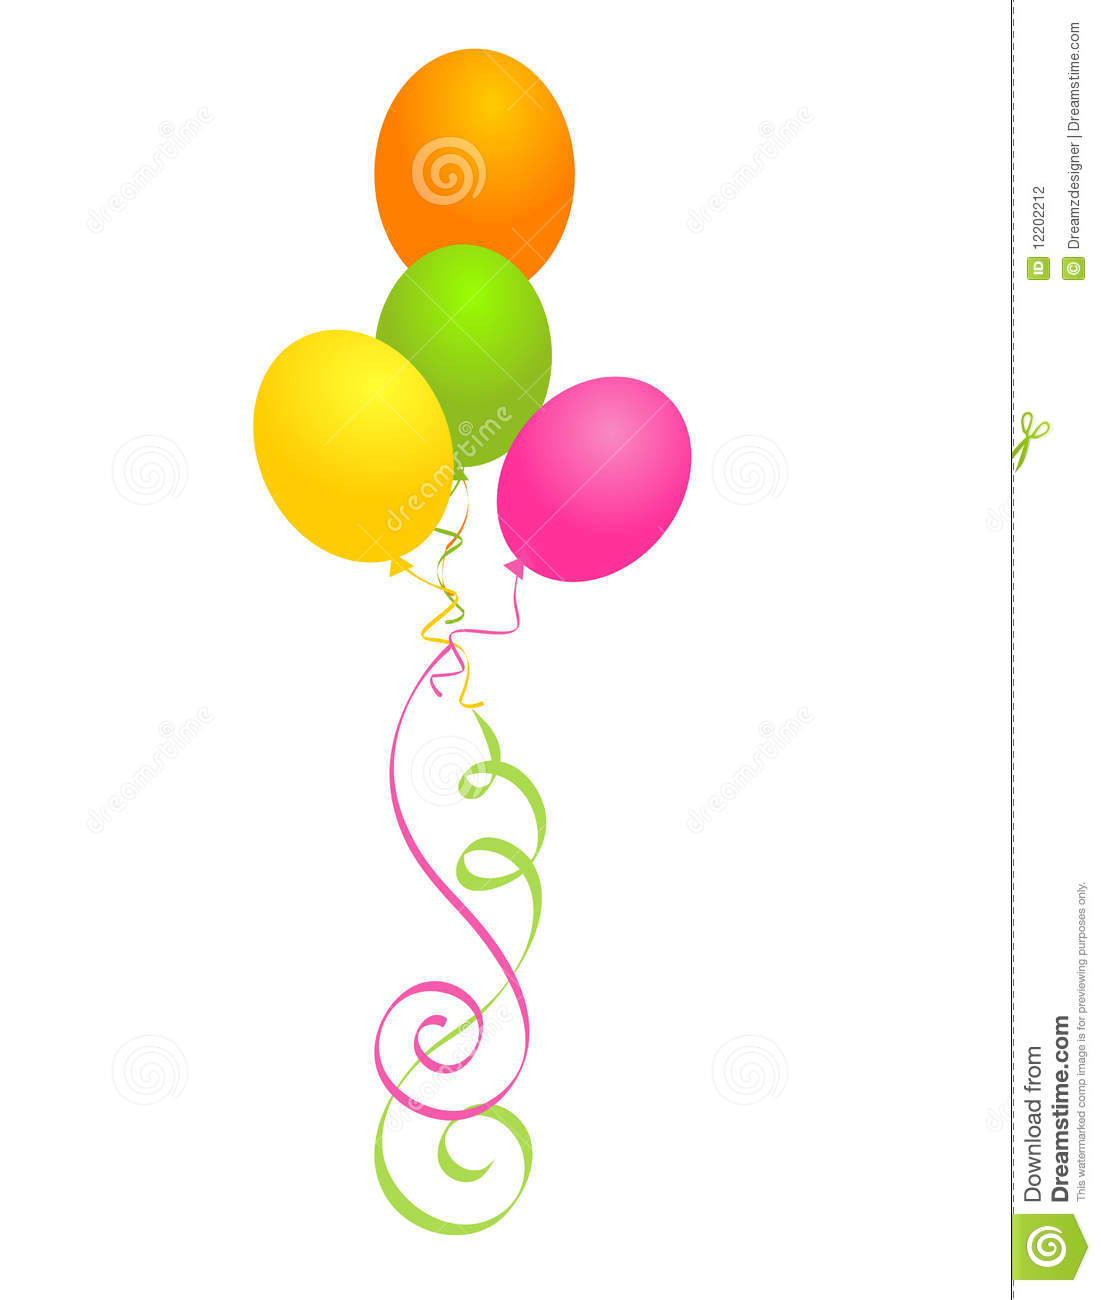 hight resolution of illustration of a bunch of multi colored balloons with curly ribbons clipart isolated on white background